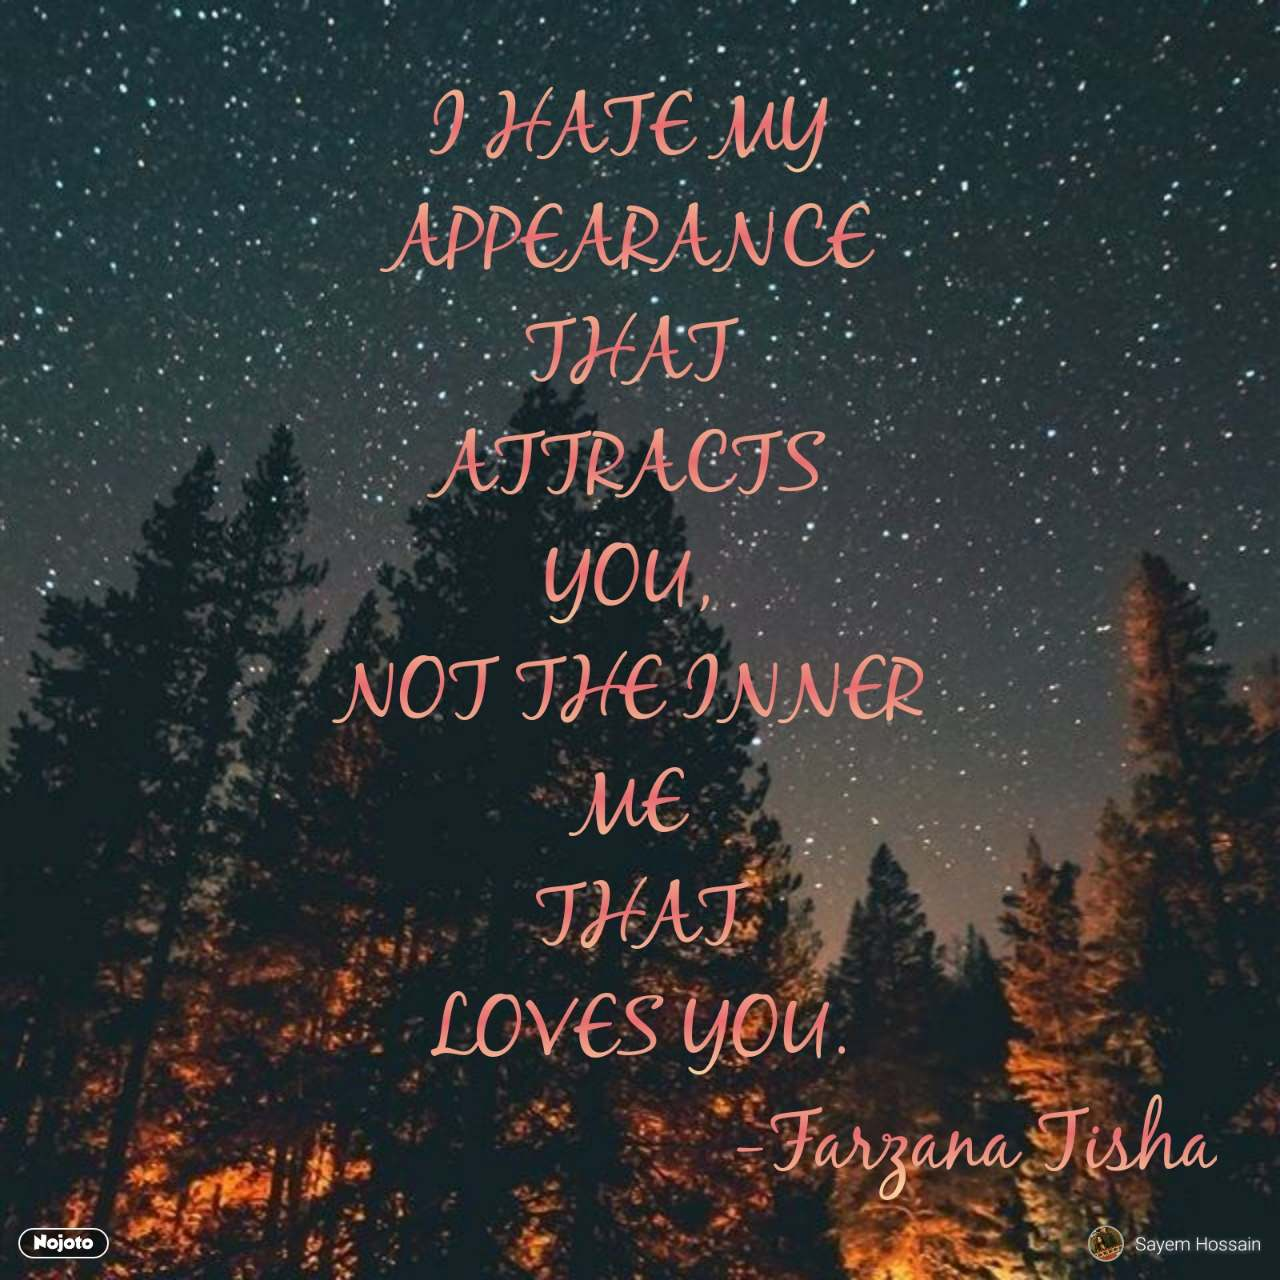 I HATE MY  APPEARANCE  THAT  ATTRACTS  YOU,  NOT THE INNER  ME  THAT LOVES YOU.                                 -Farzana Tisha #NojotoQuote